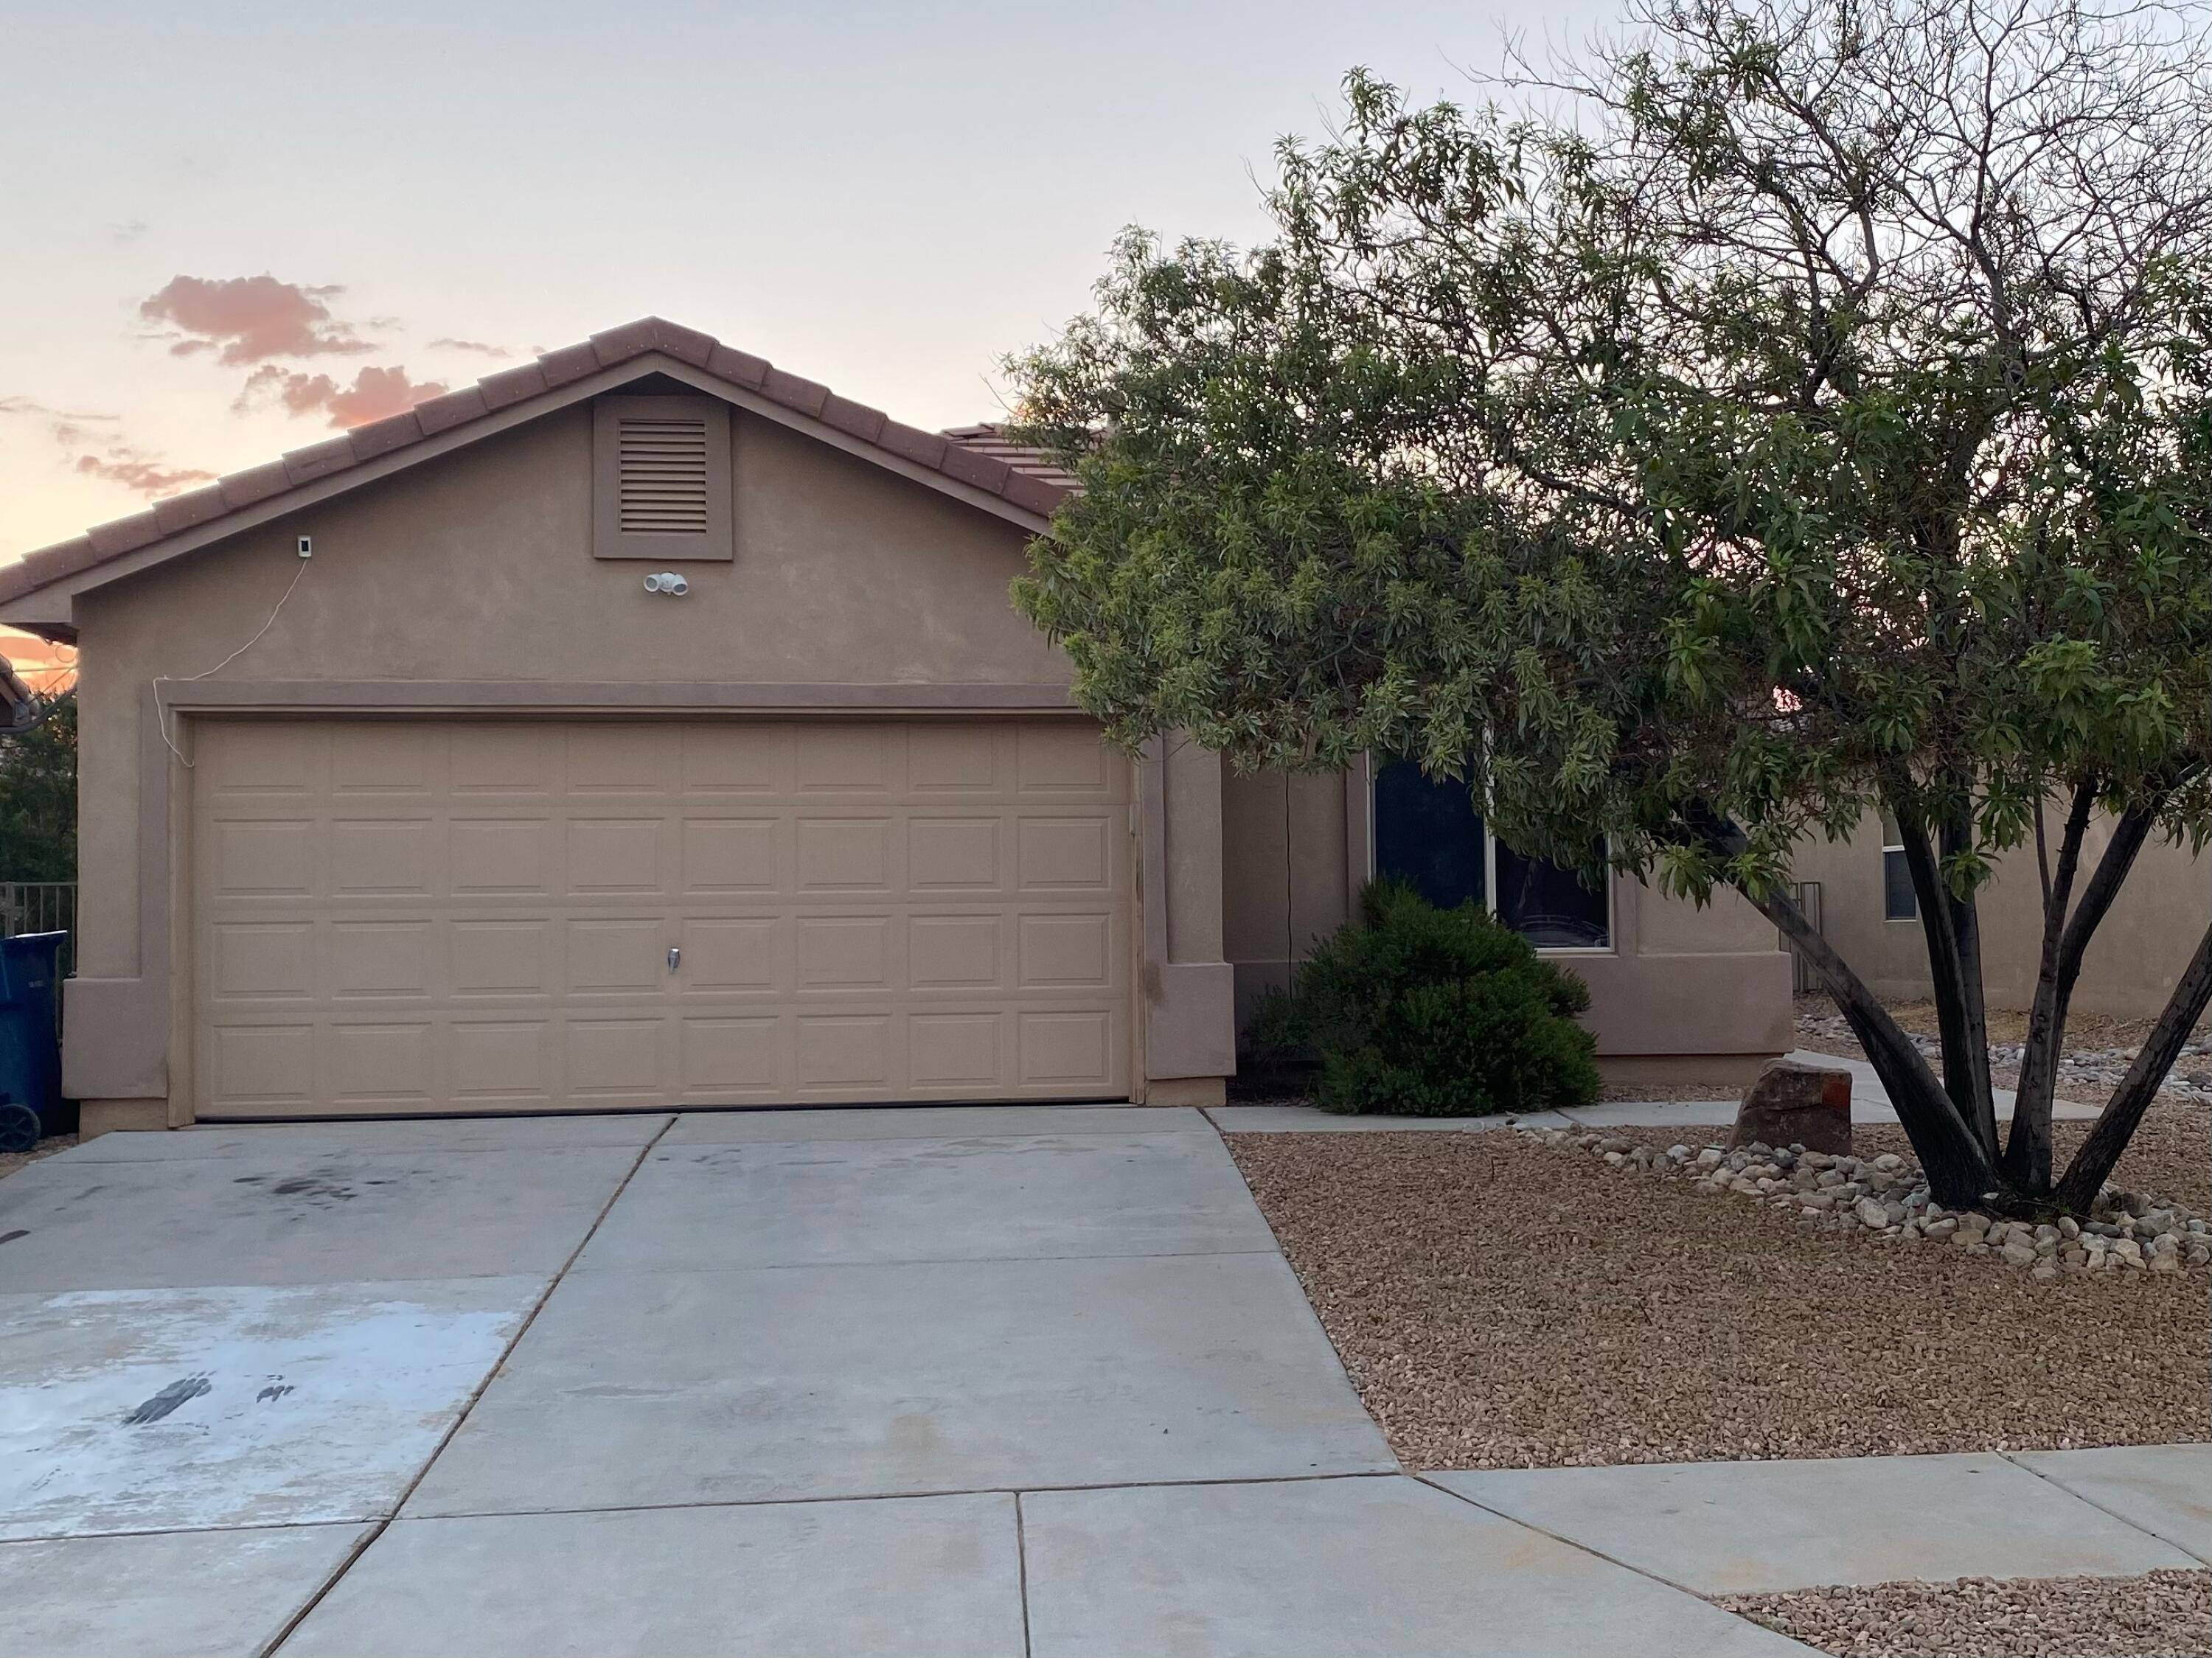 Beautiful home has been upgraded by seller. Granite and quartz countertops. Nicely maintained. Ready for a new owner. Close to shopping centers and I-25. **NO SHOWINGS ON SUNDAY October 3, 2020.